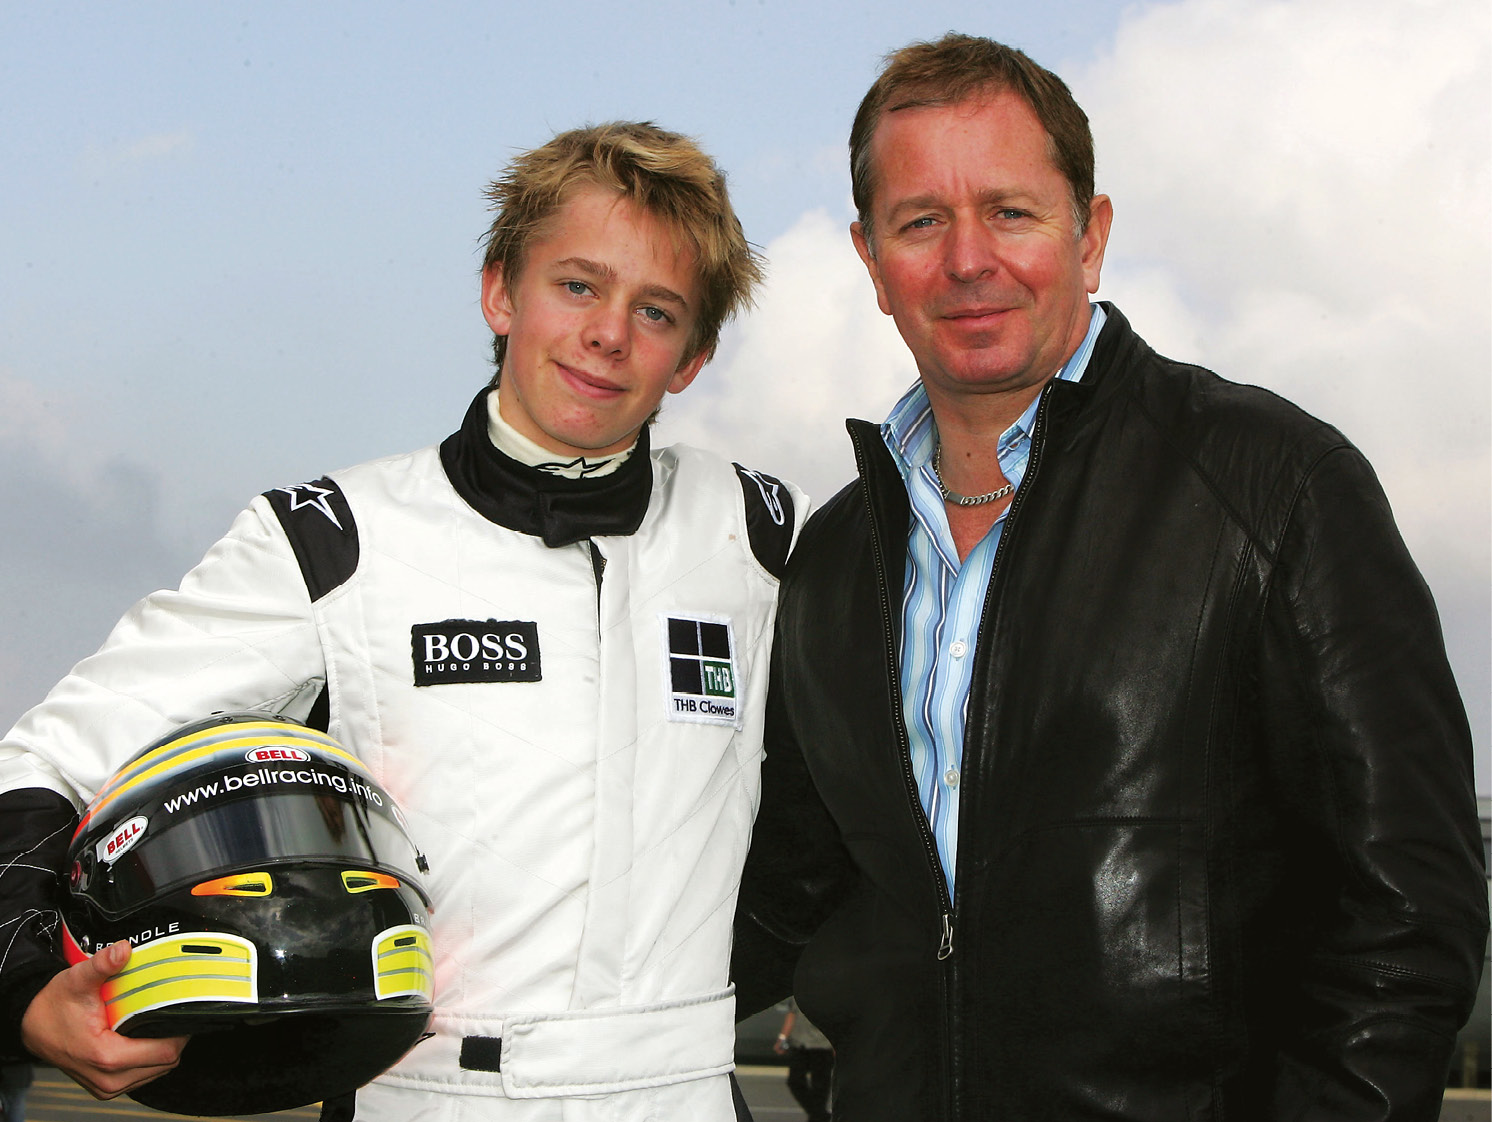 Alex began his car racing career in the junior T-Cars series in 2006, ably assisted by Martin